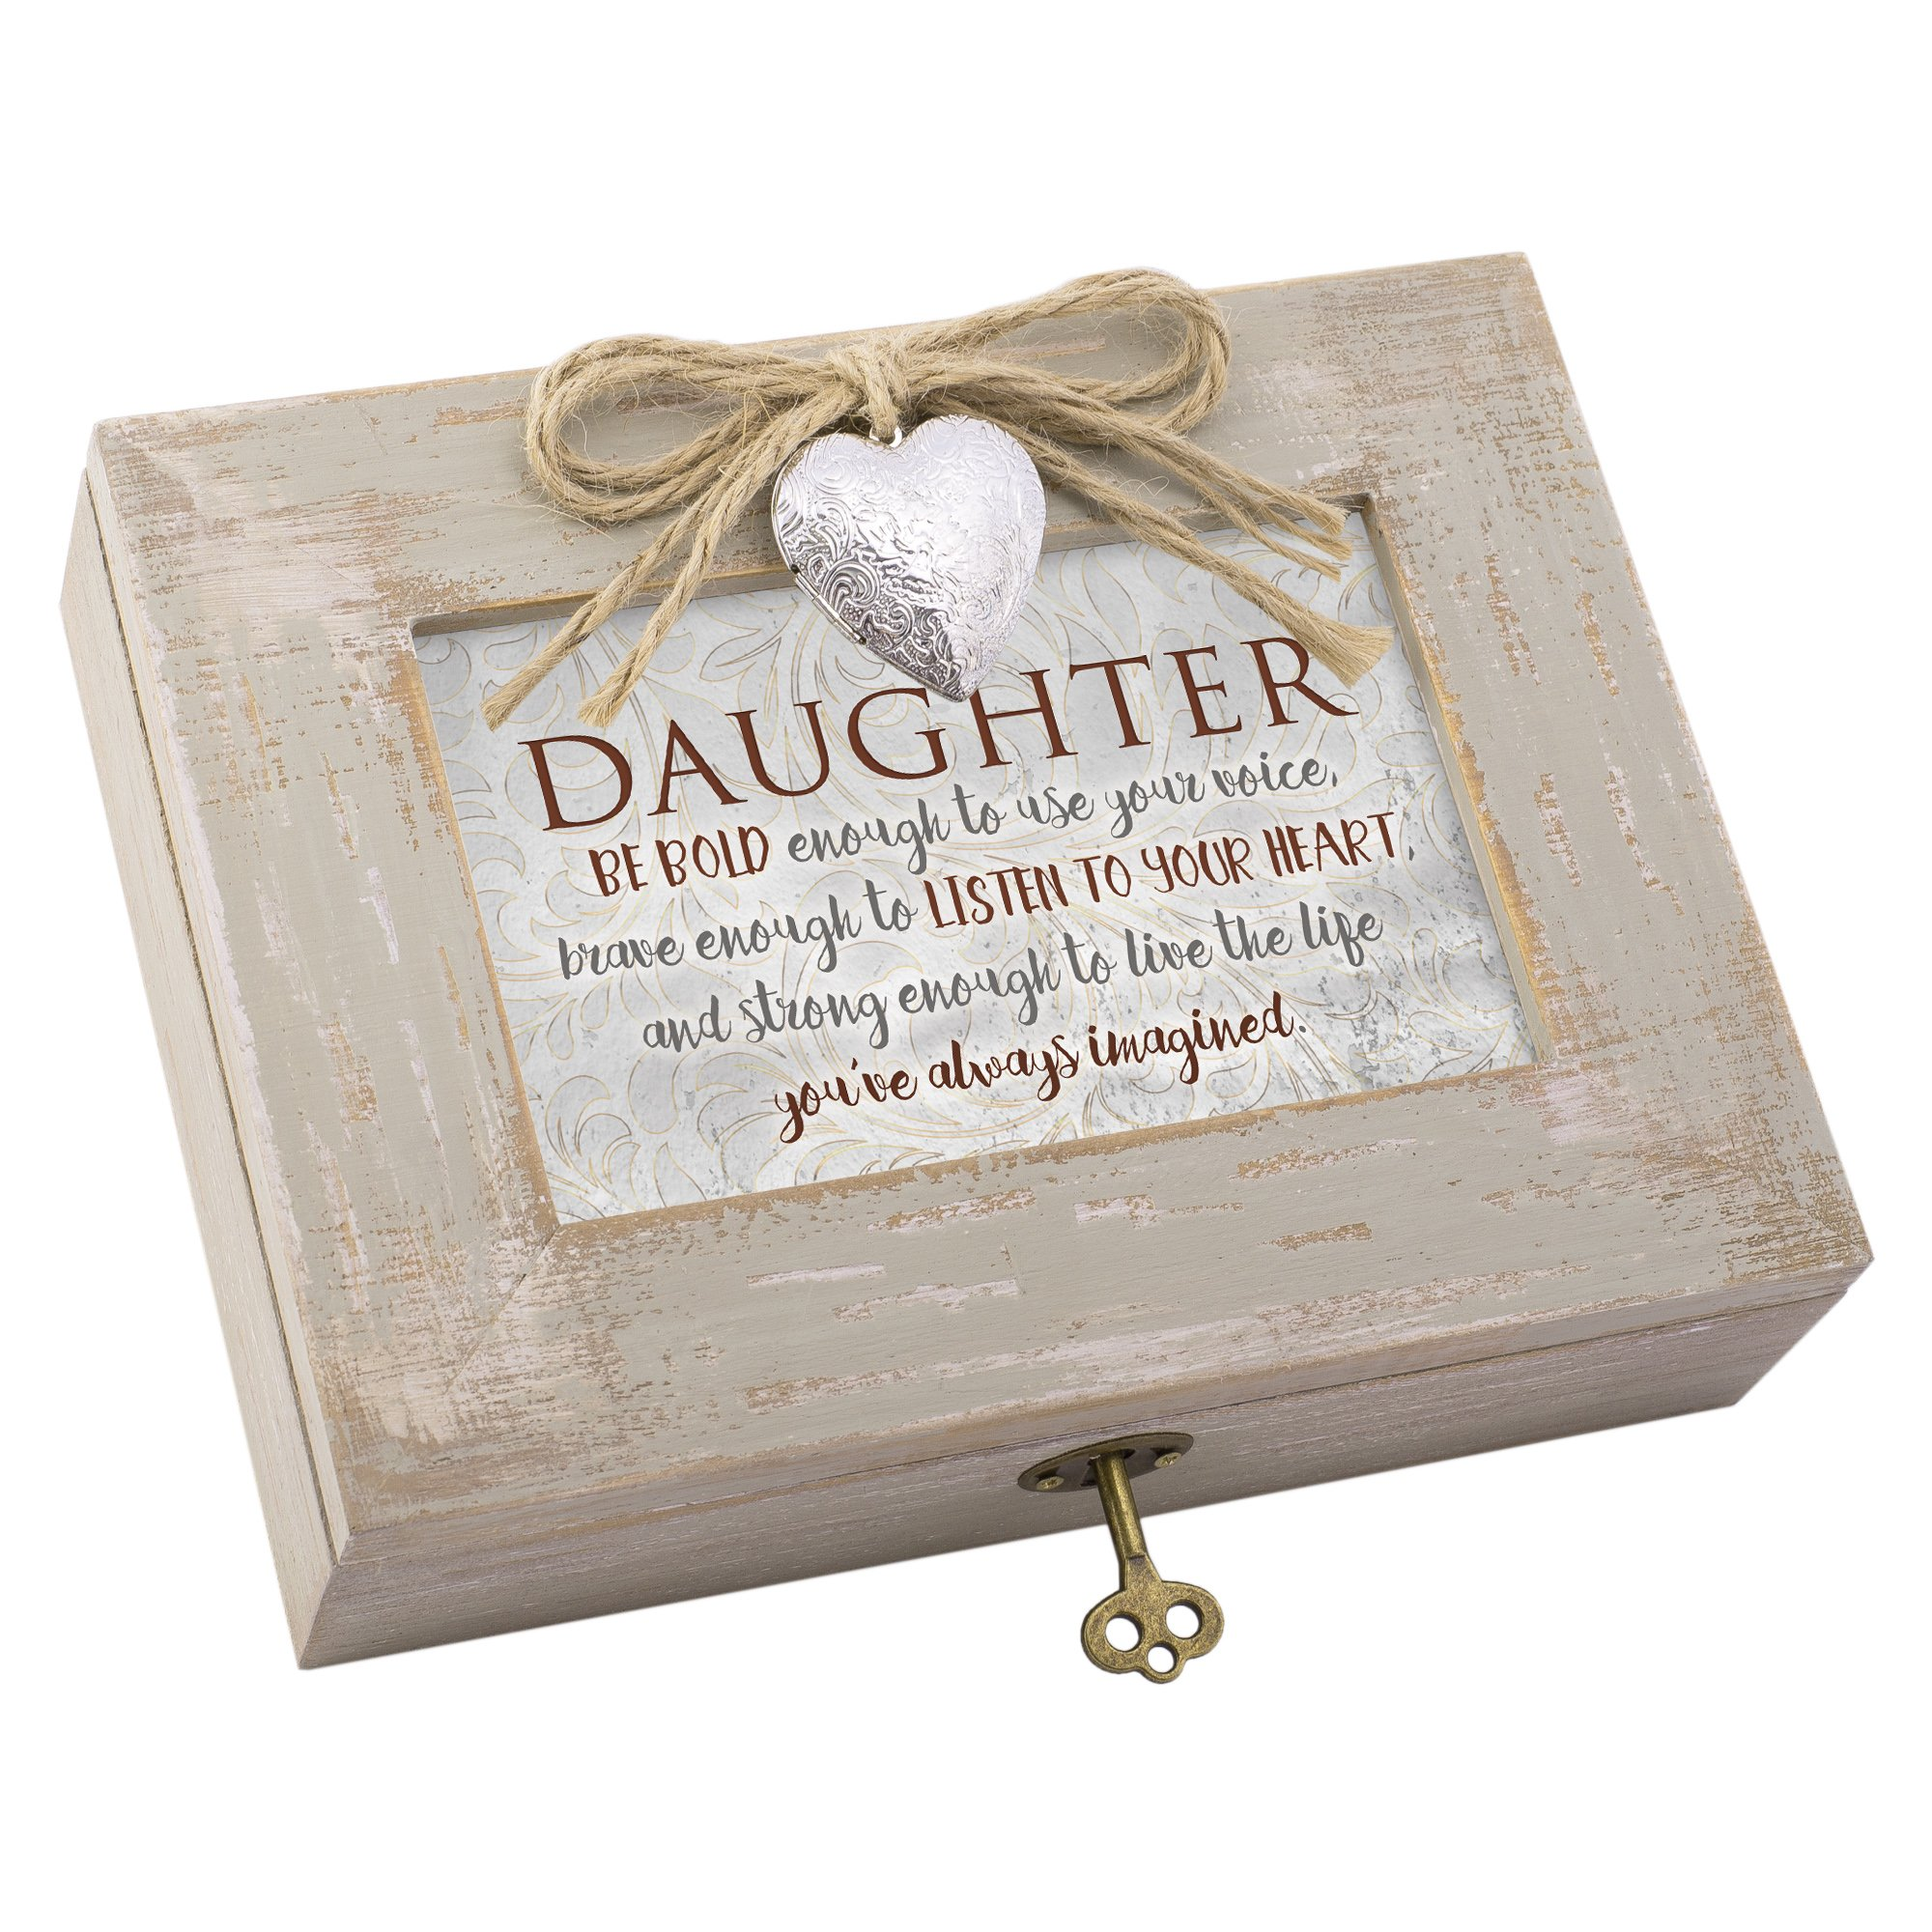 Daughter Live Life Imagined Distressed Wood Locket Jewelry Music Box Plays Tune You Light Up My Life